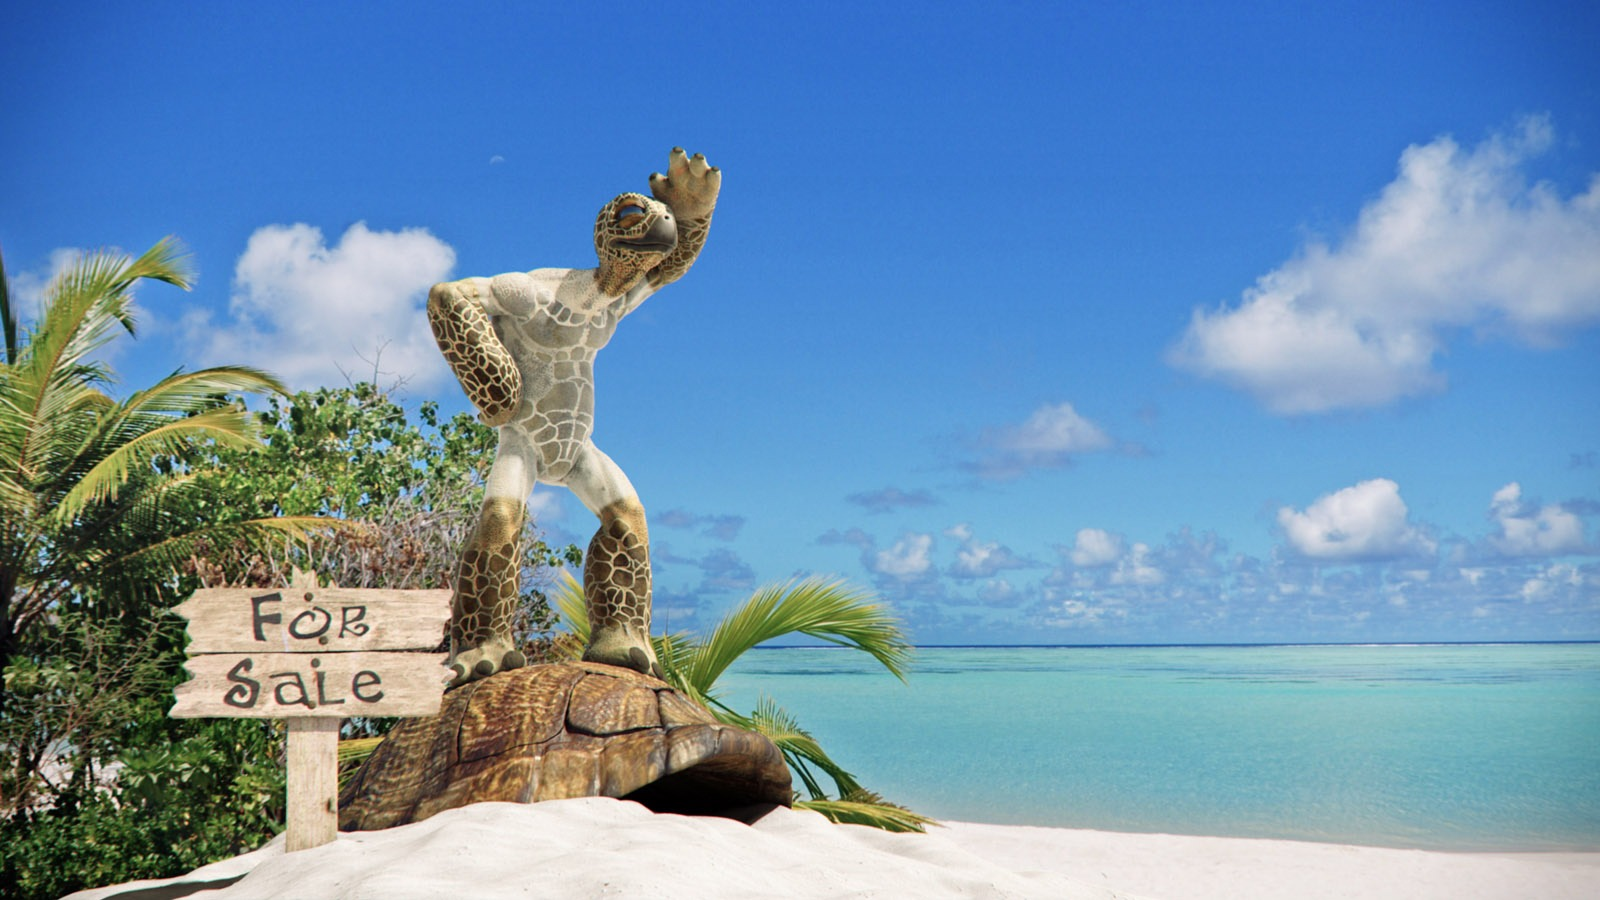 Turtle Freedom For Sale 3d Illustrations Scenery